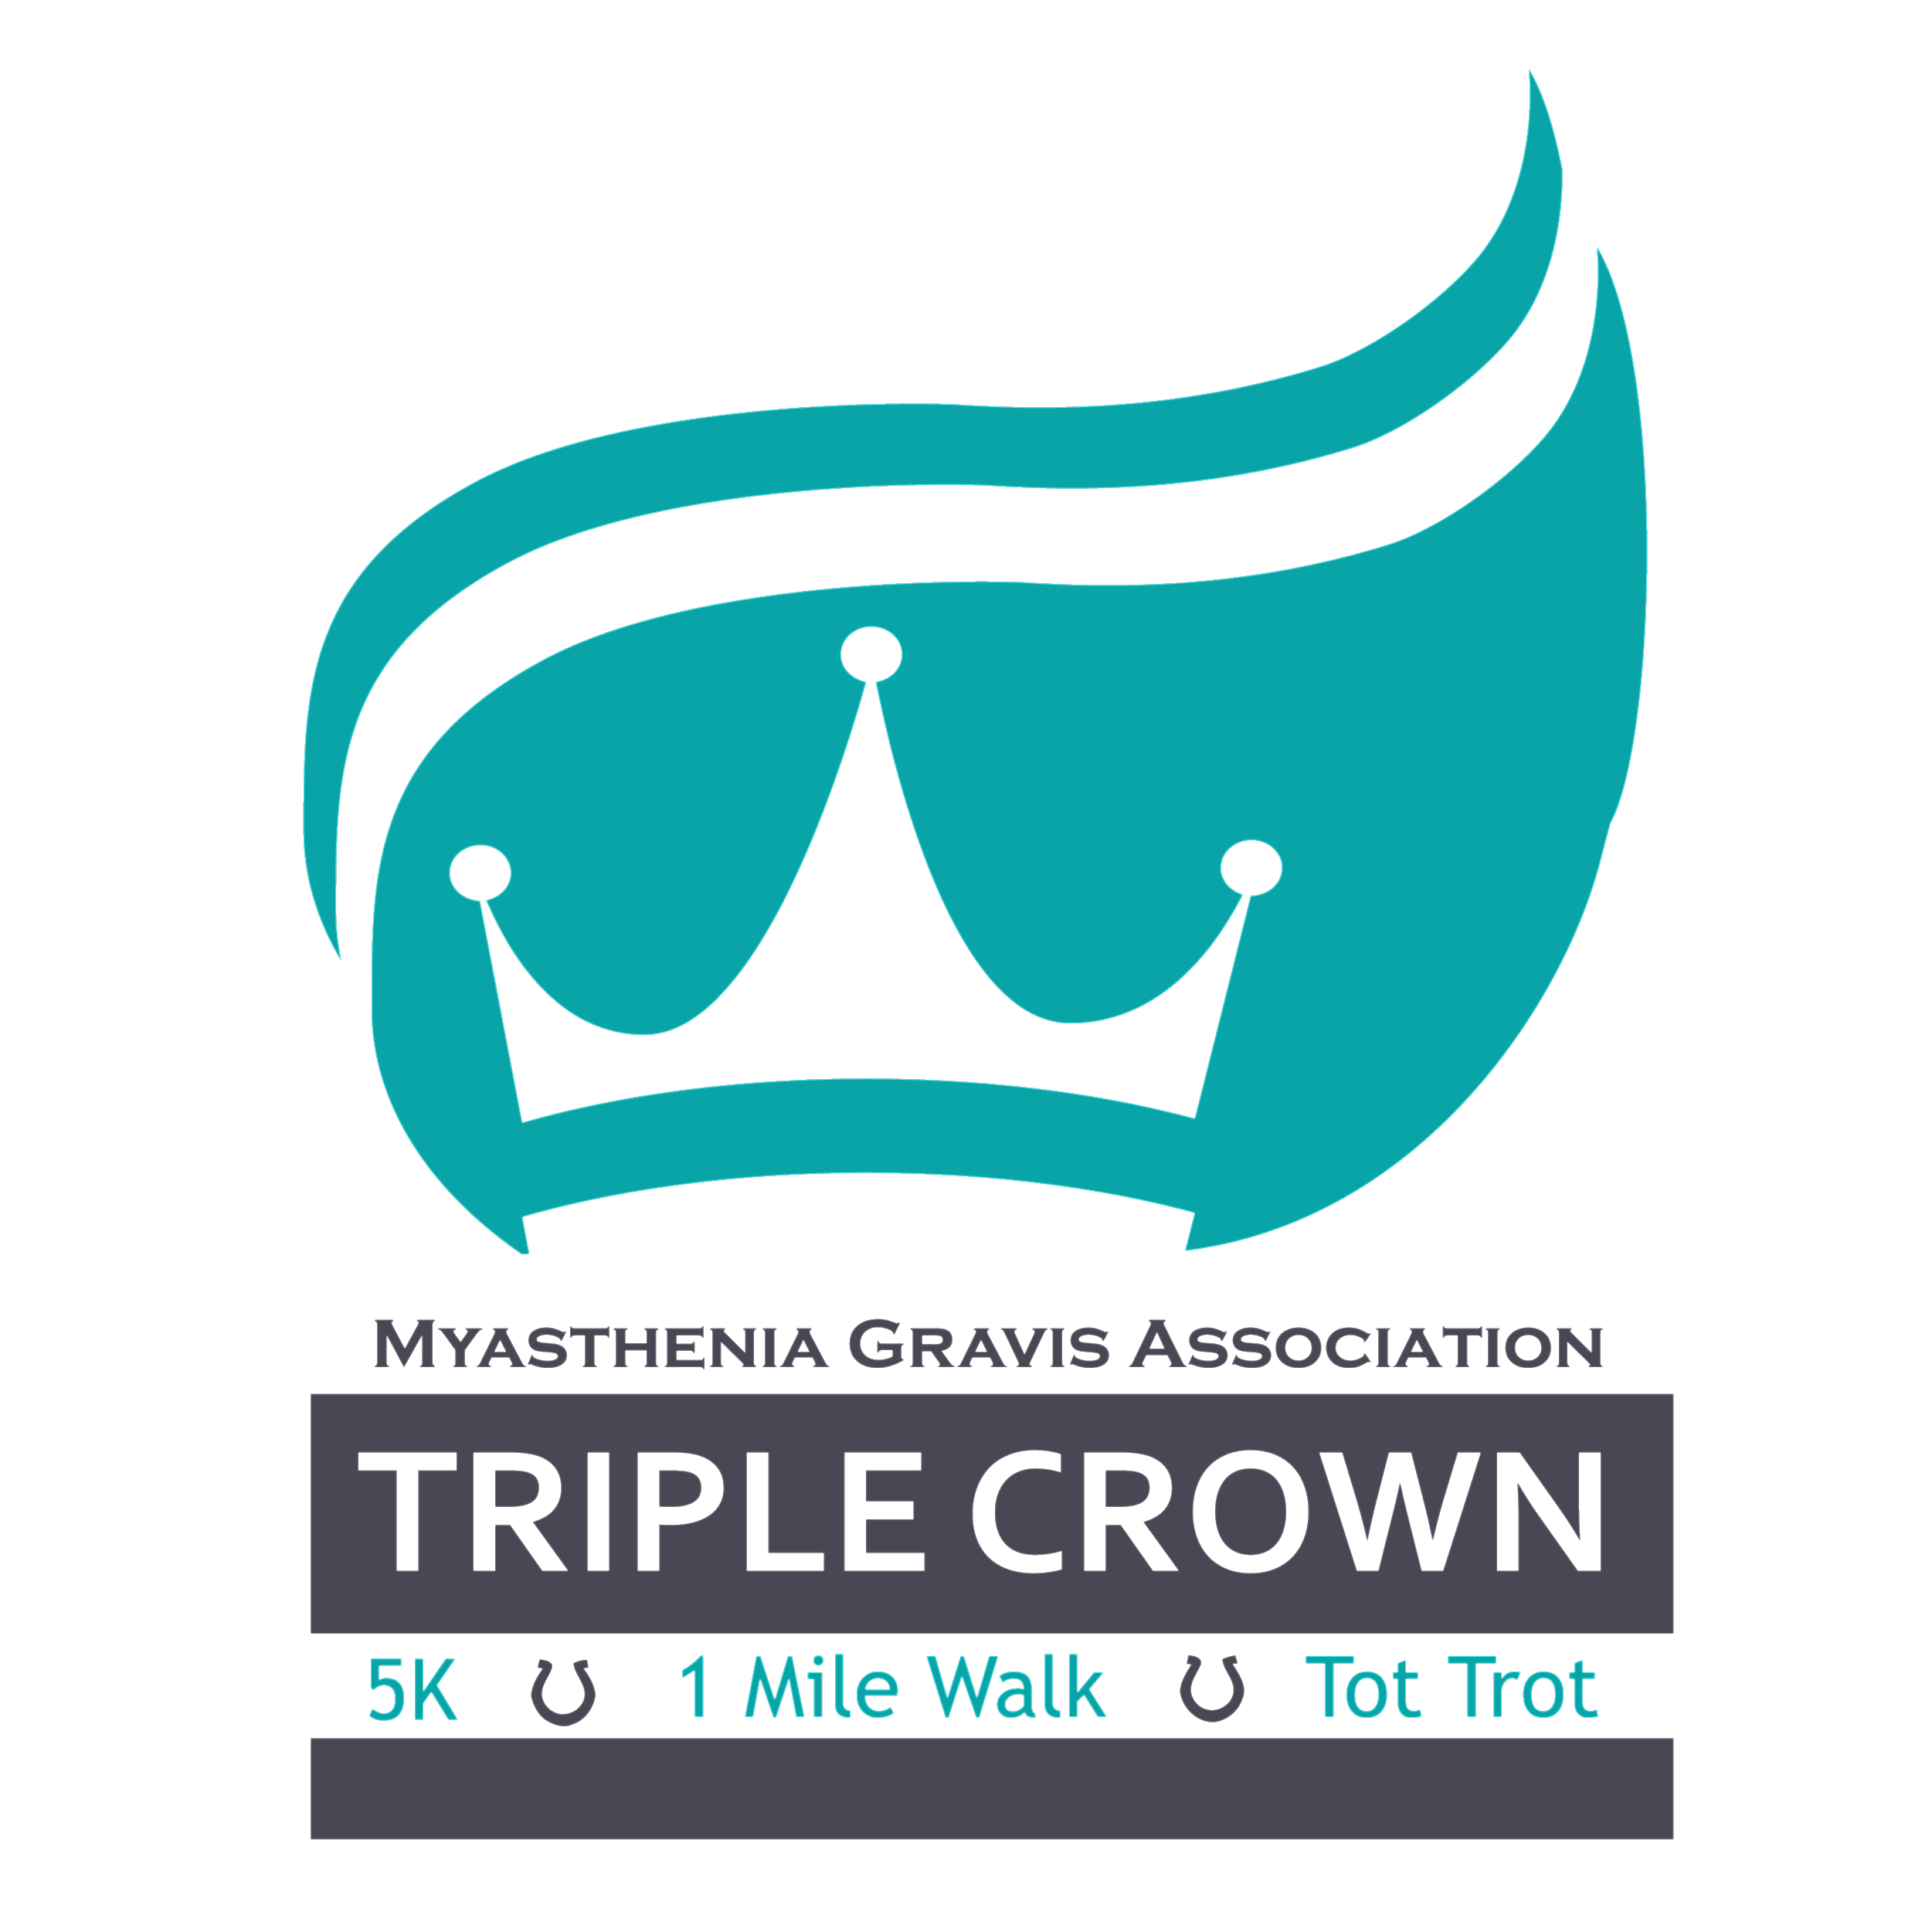 The MGA Triple Crown Showdown 5K Run/Walk, Mile Mosey and Tot Trot benefits those impacted with myasthenia gravis living in the Heartland. (MGA Triple Crown Showdown)